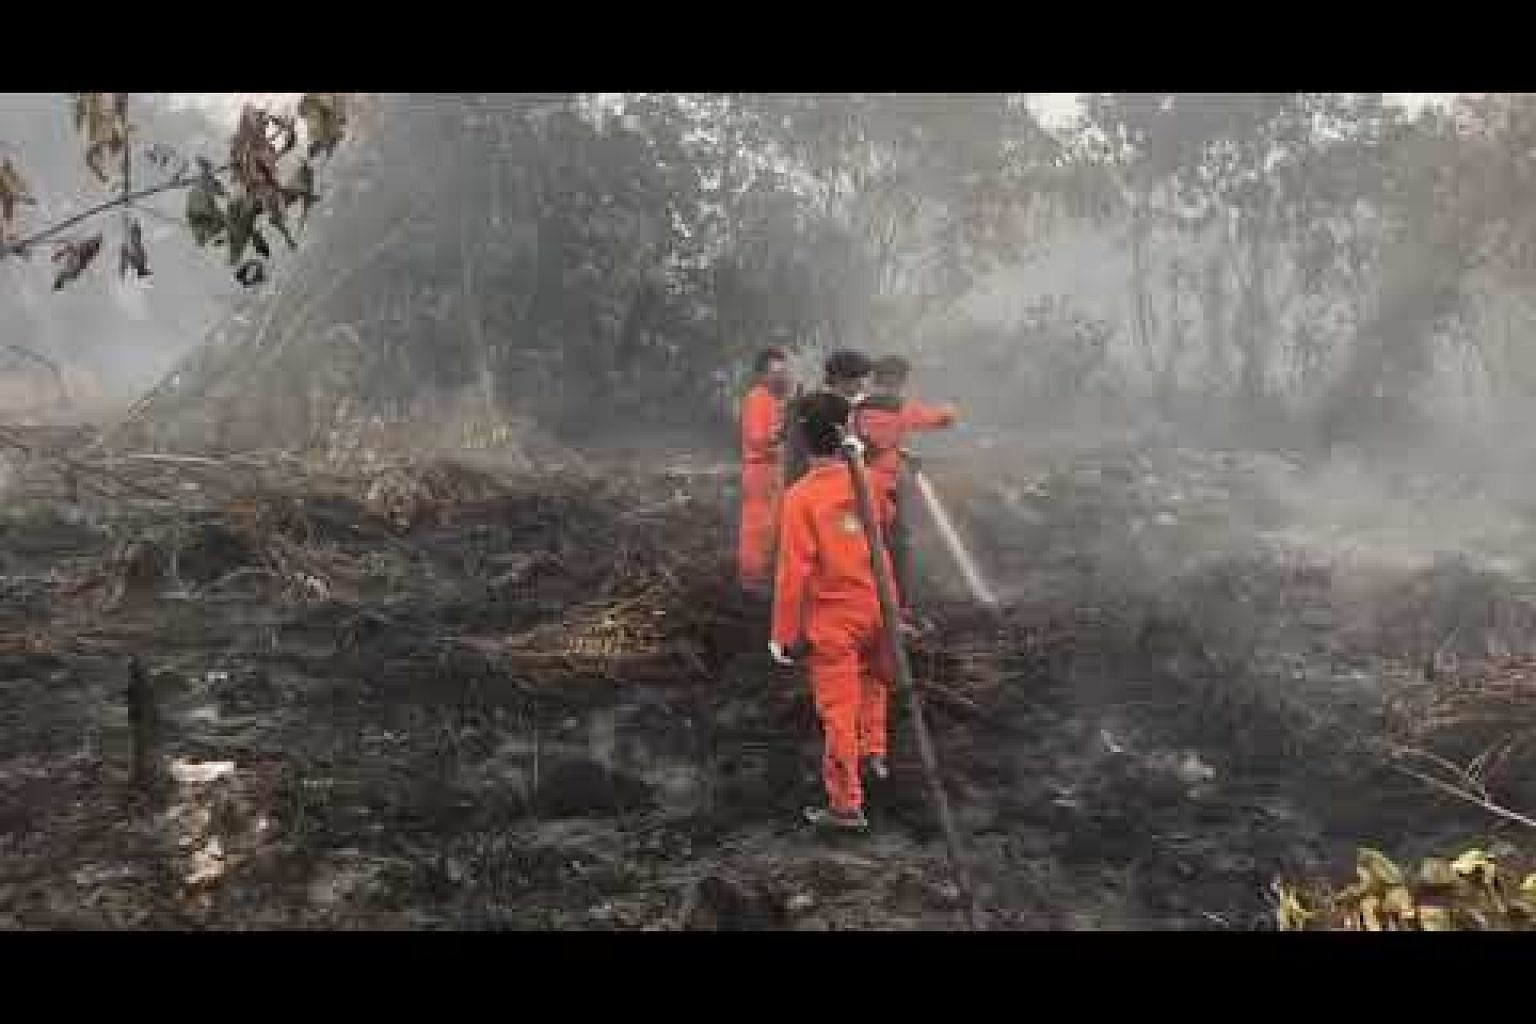 A fireman and students from a local university volunteer helping to put out fires in Riau